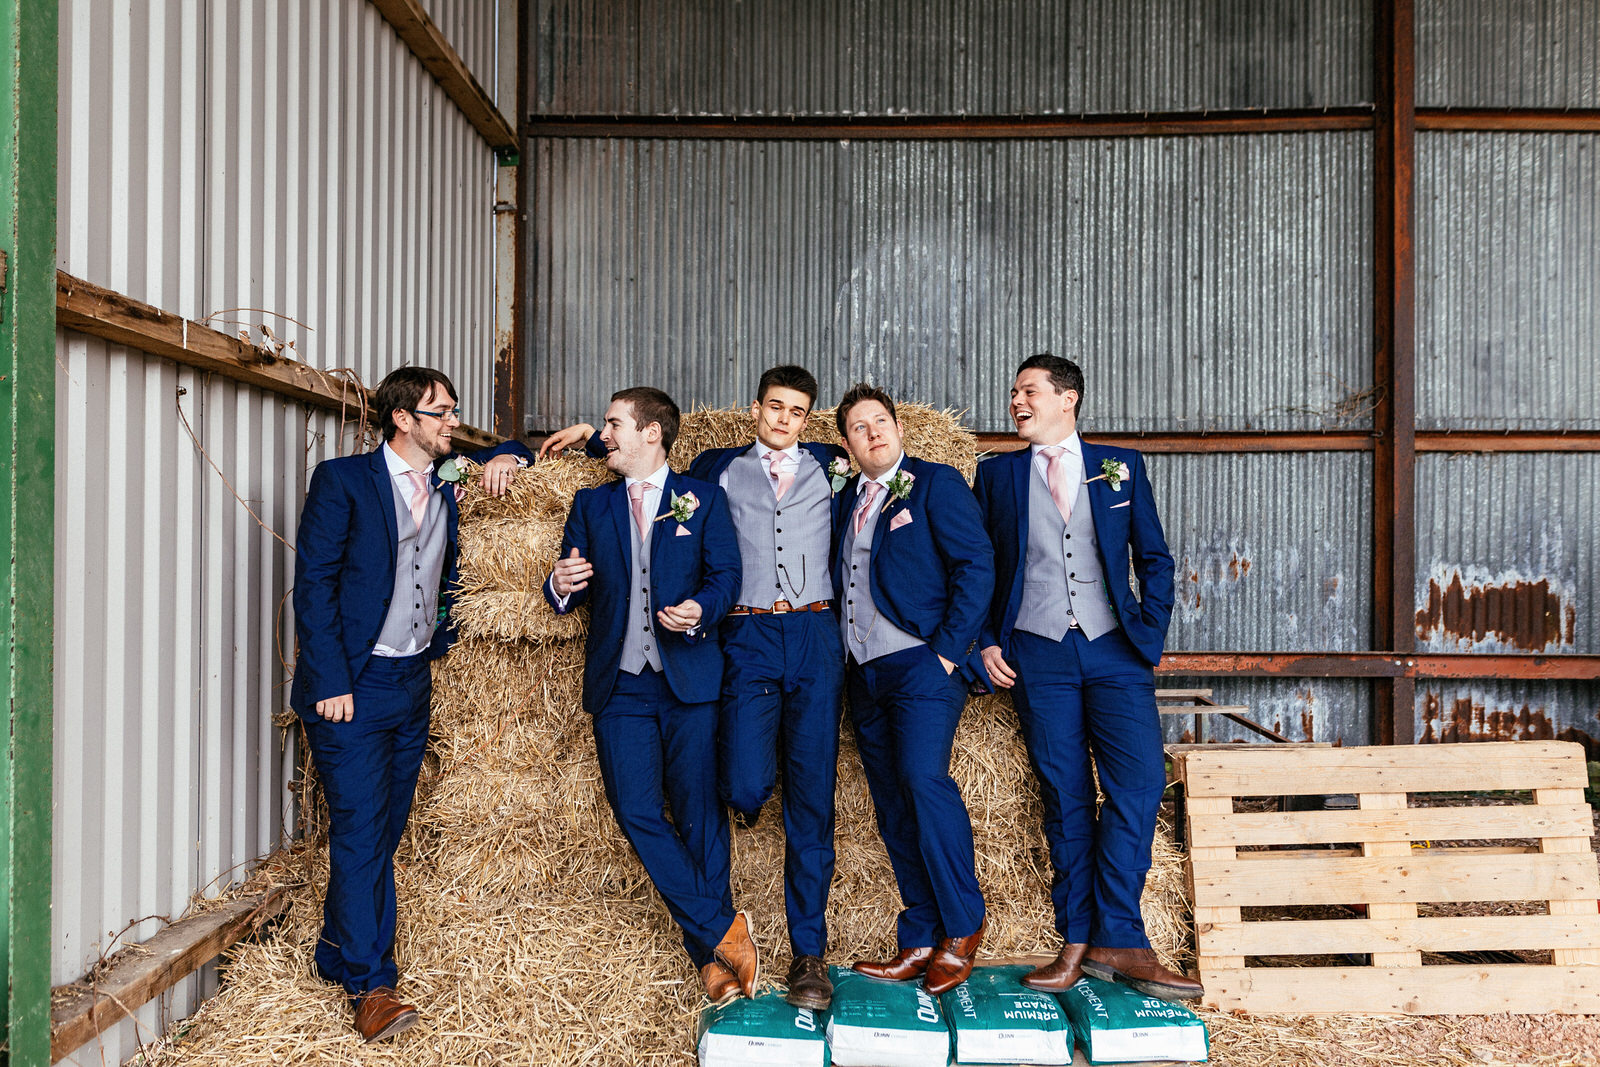 Winkworth-Farm-Wedding-Photographer-093.jpg